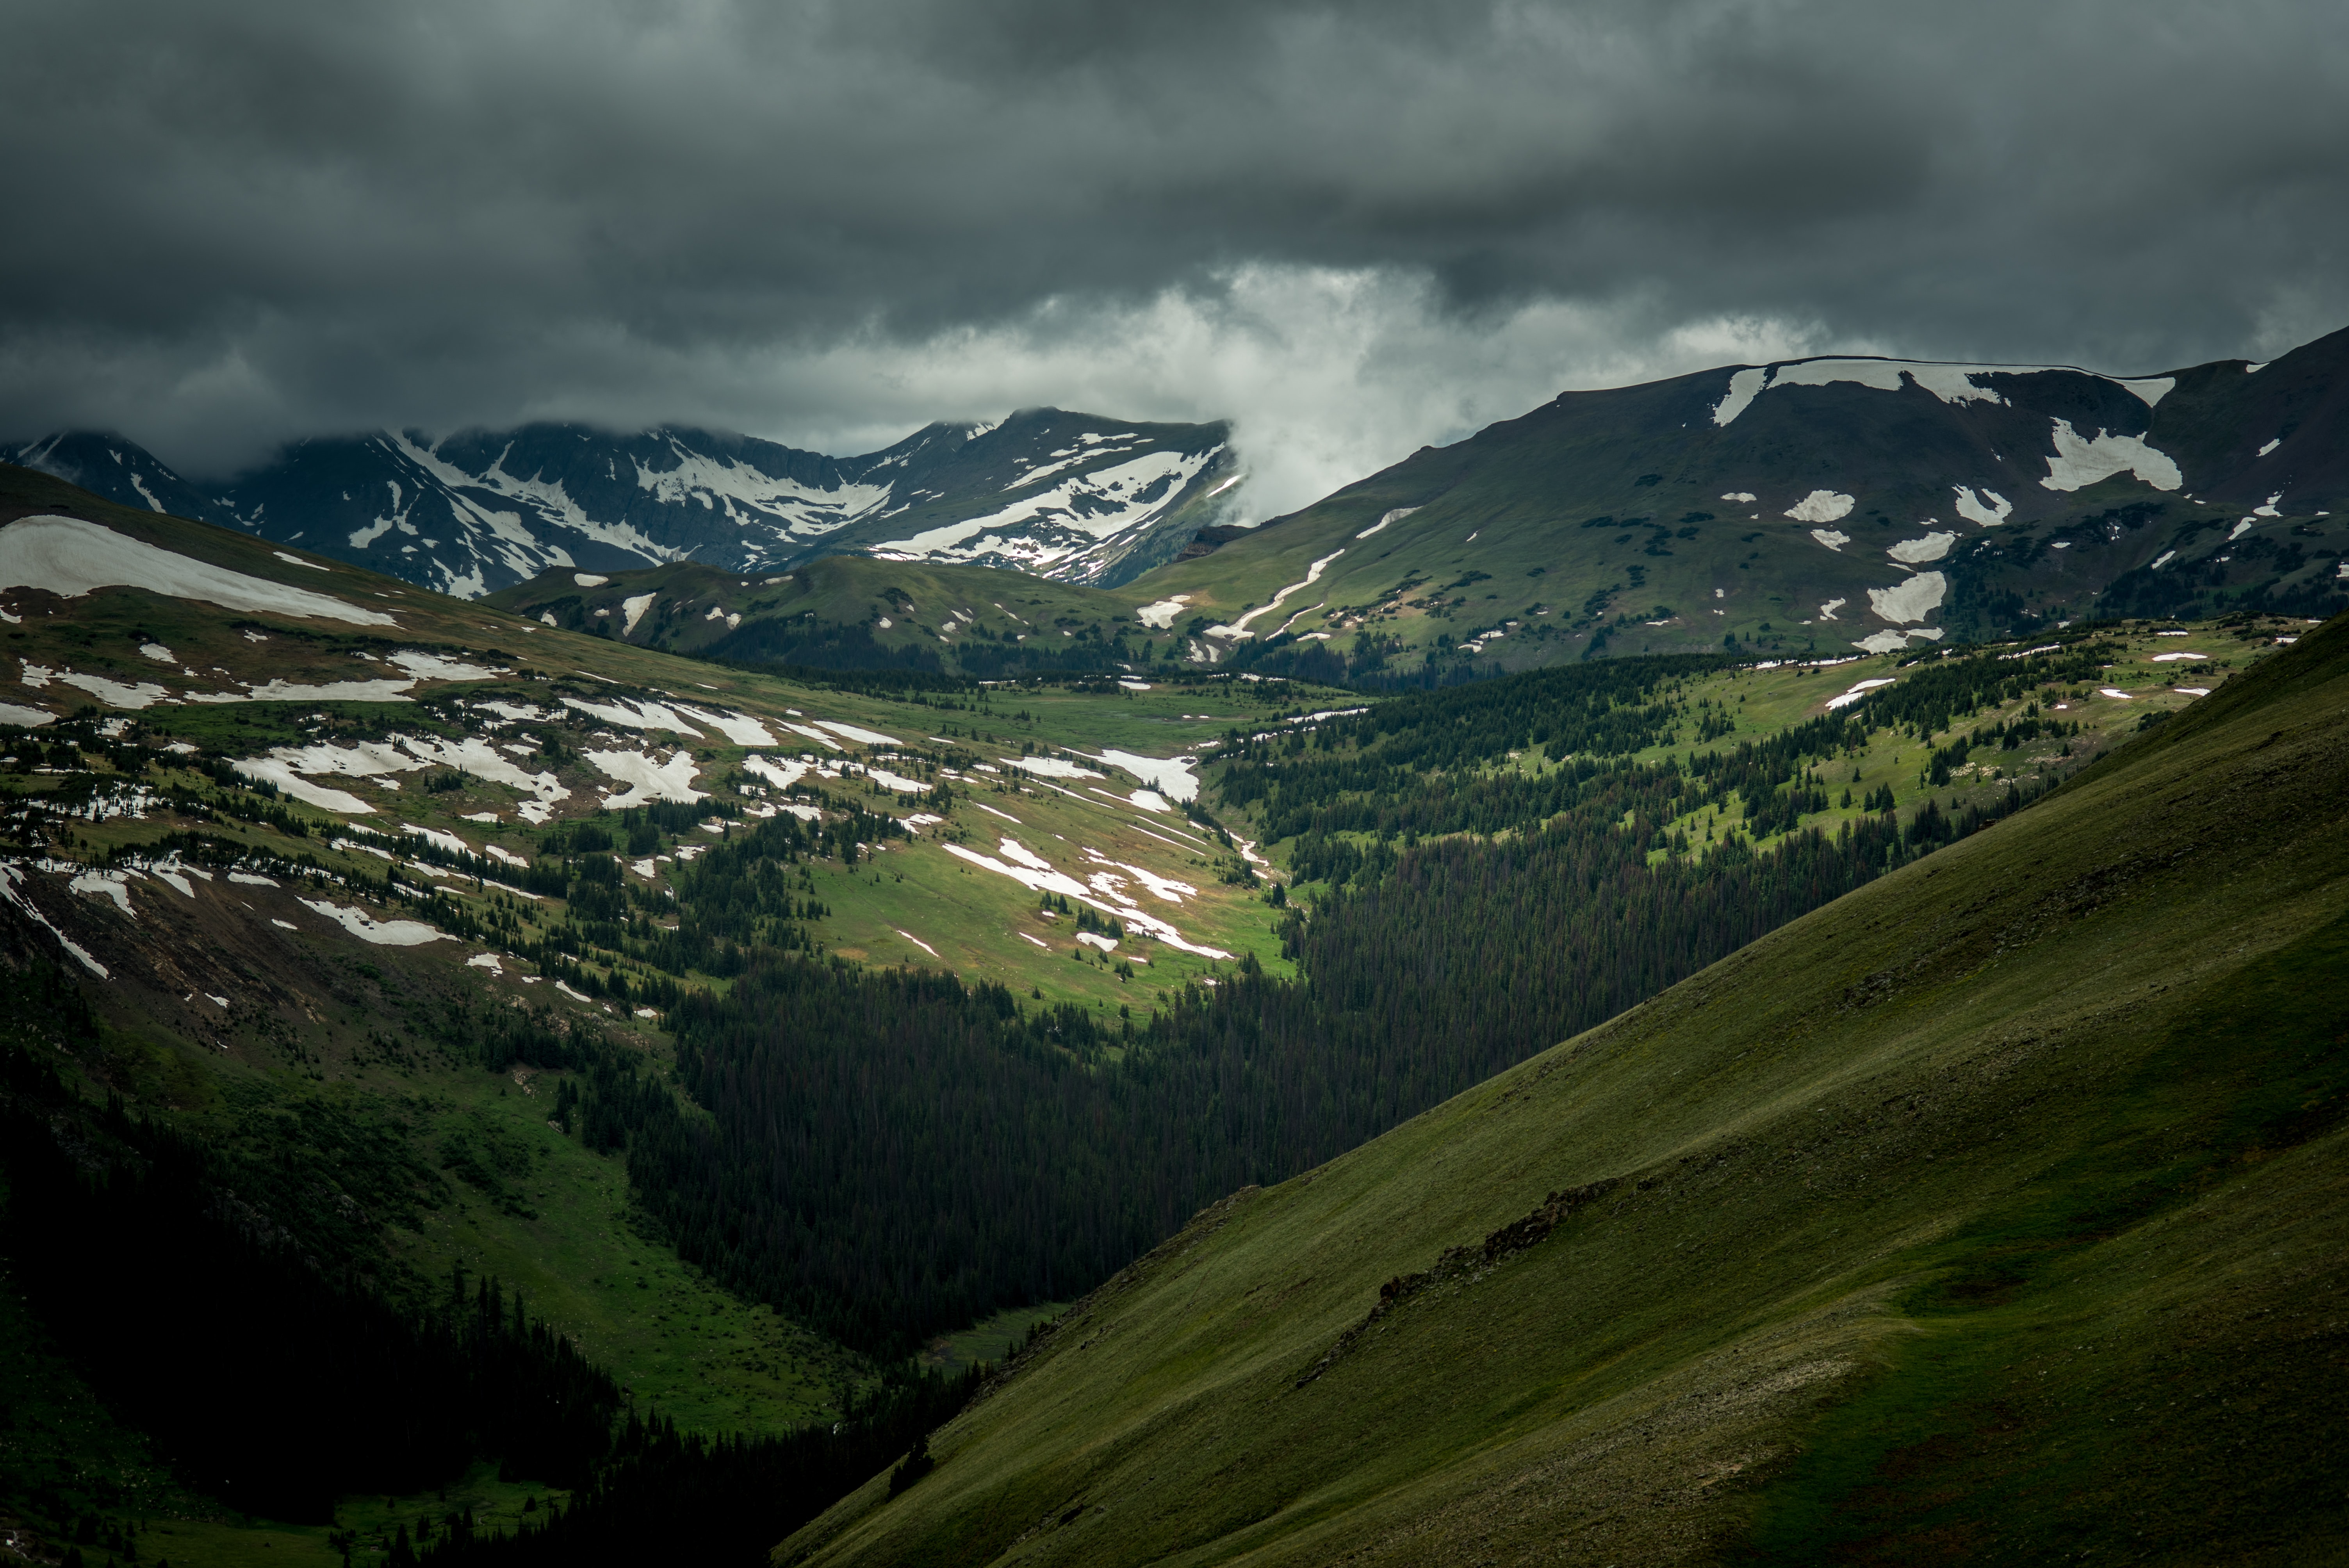 Patches of snow in a wooded mountain valley on a cloudy day